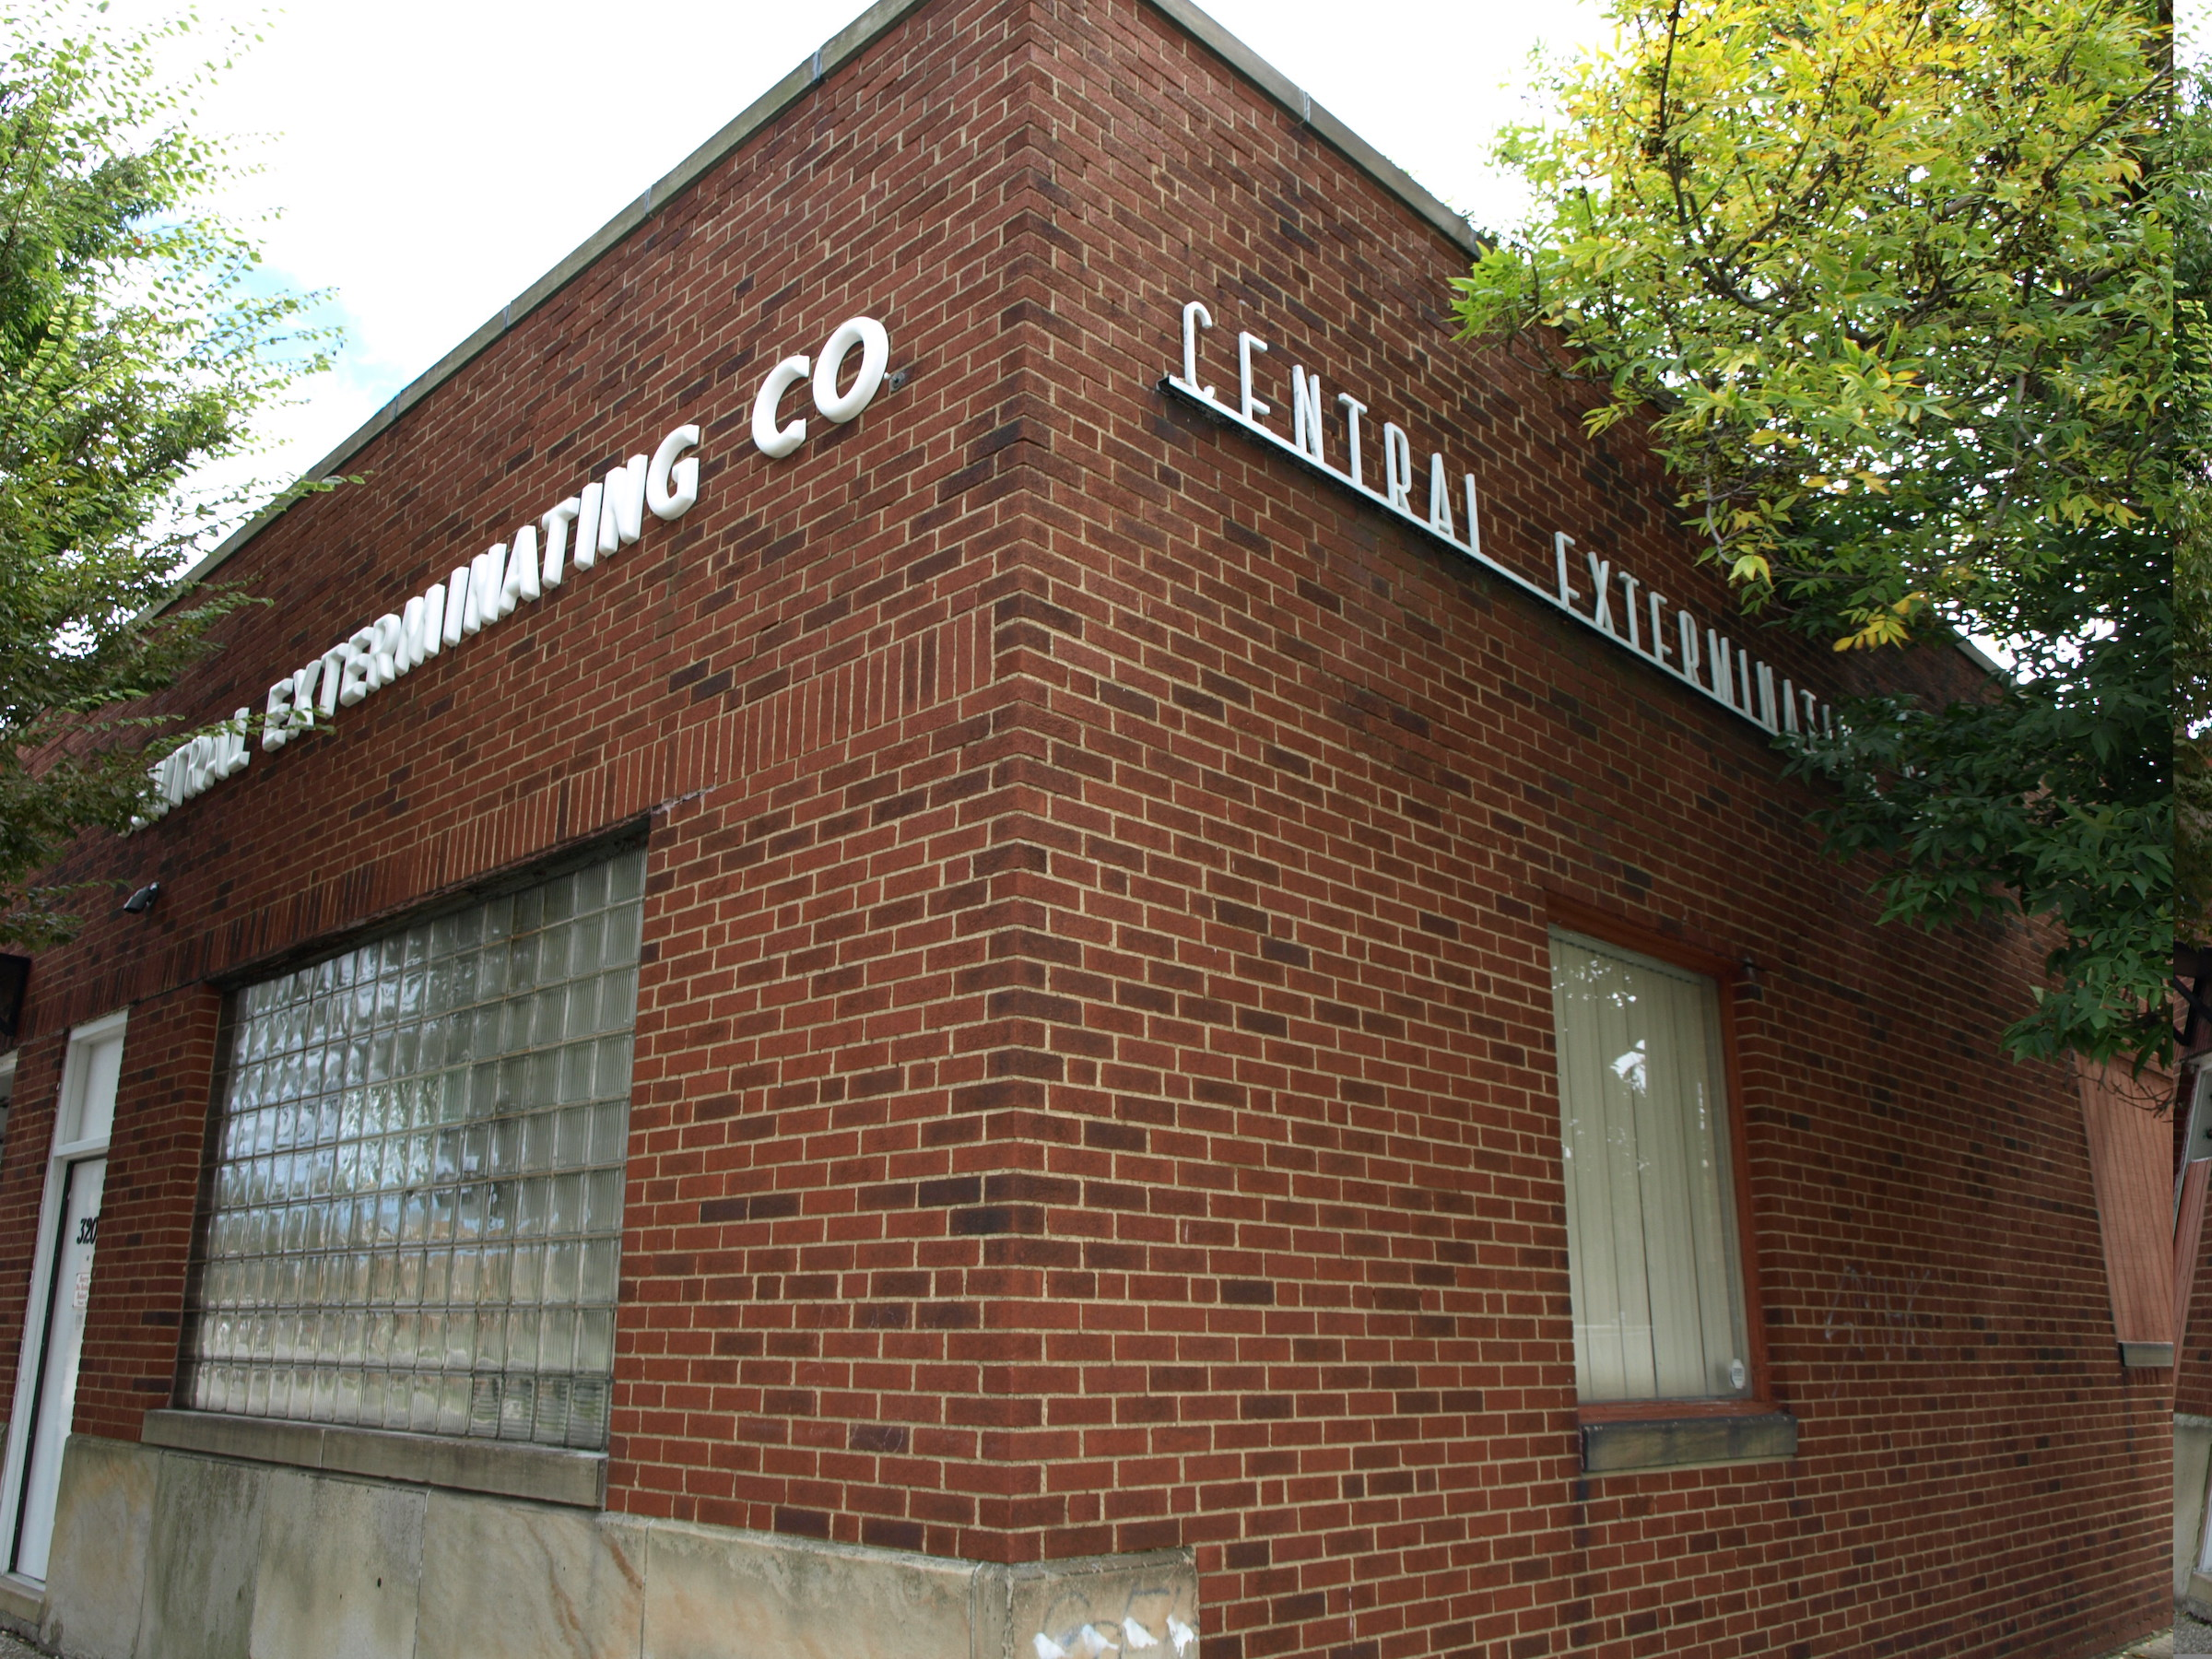 Photo of the front of the Central Exterminating office in CLeveland, Ohio